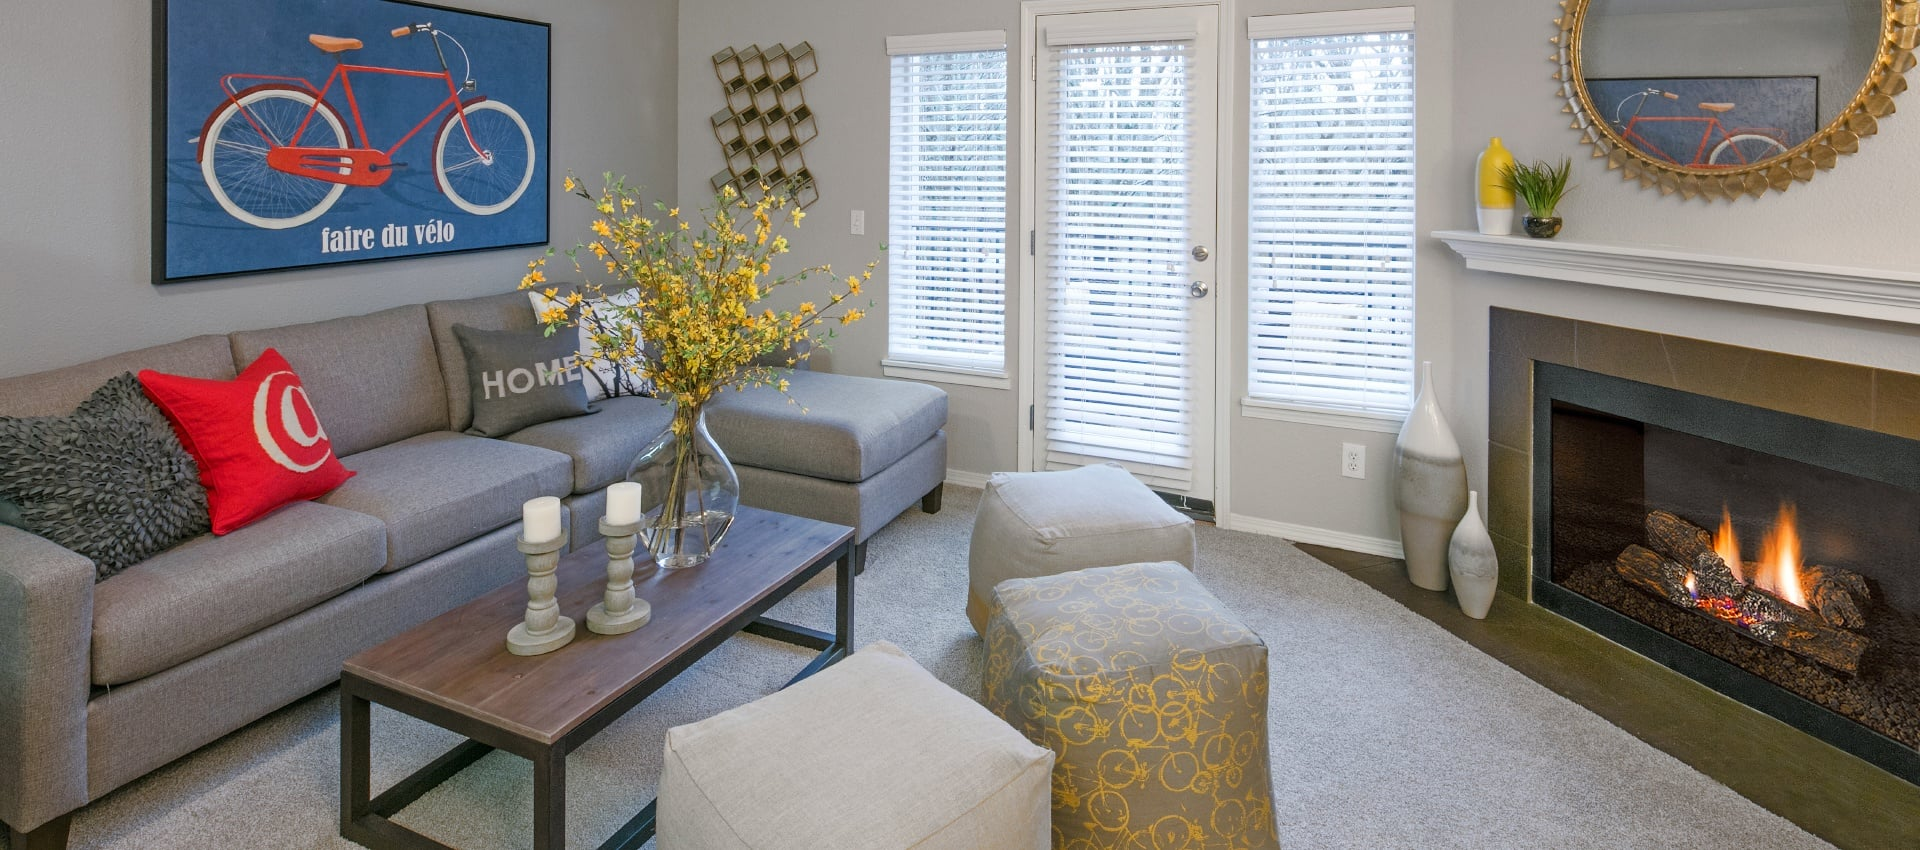 Colorful Living Room at Waterhouse Place in Beaverton, OR